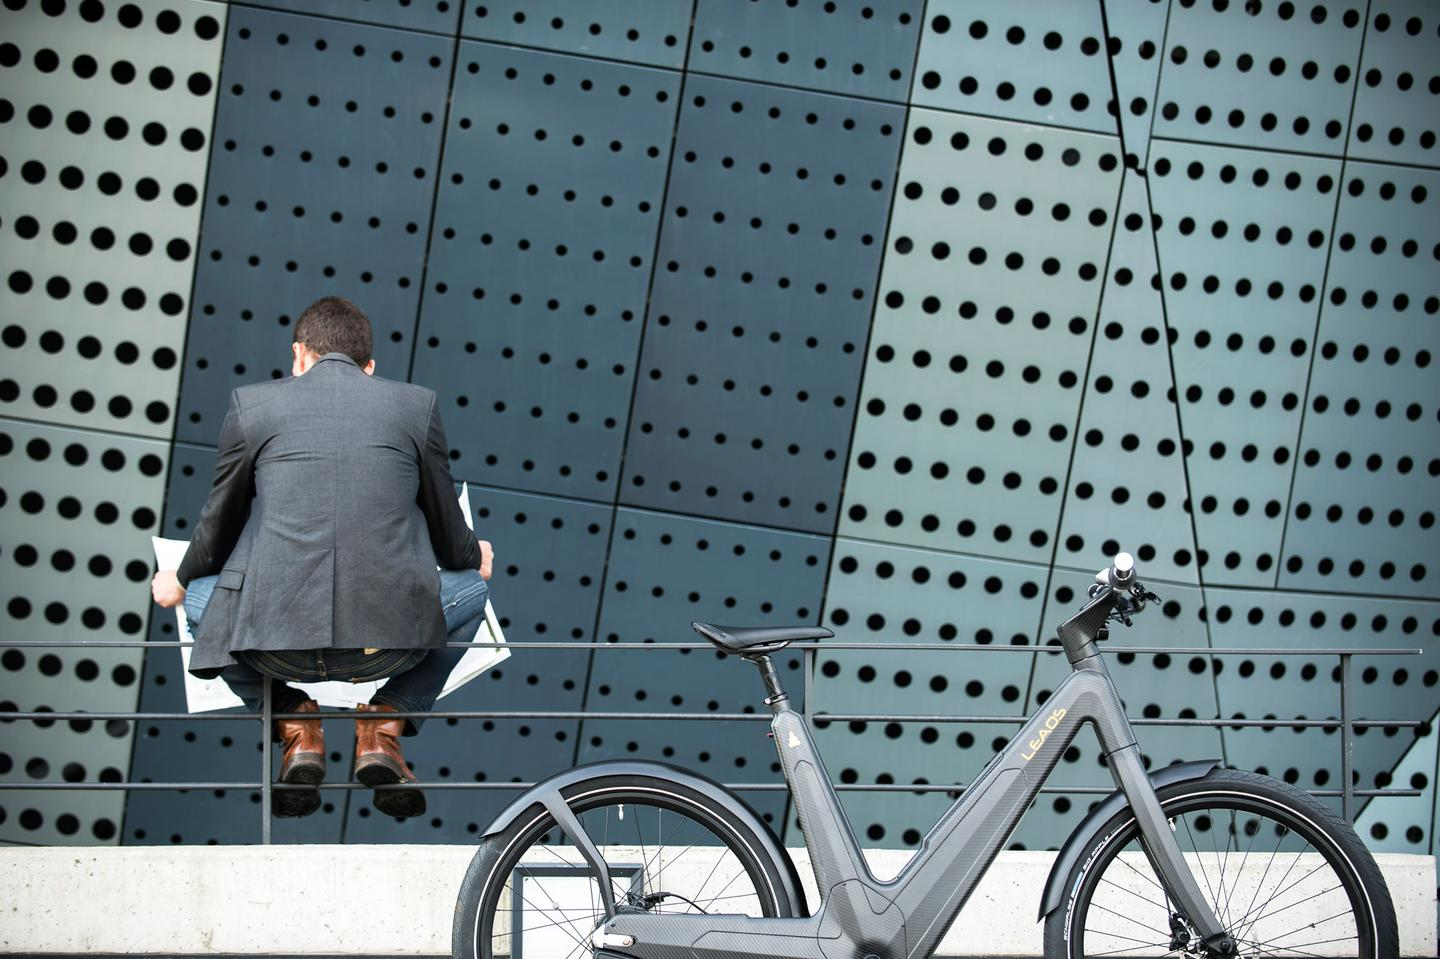 The Leaos e-bike features a self-supporting unisex carbon fiber monocoque frame